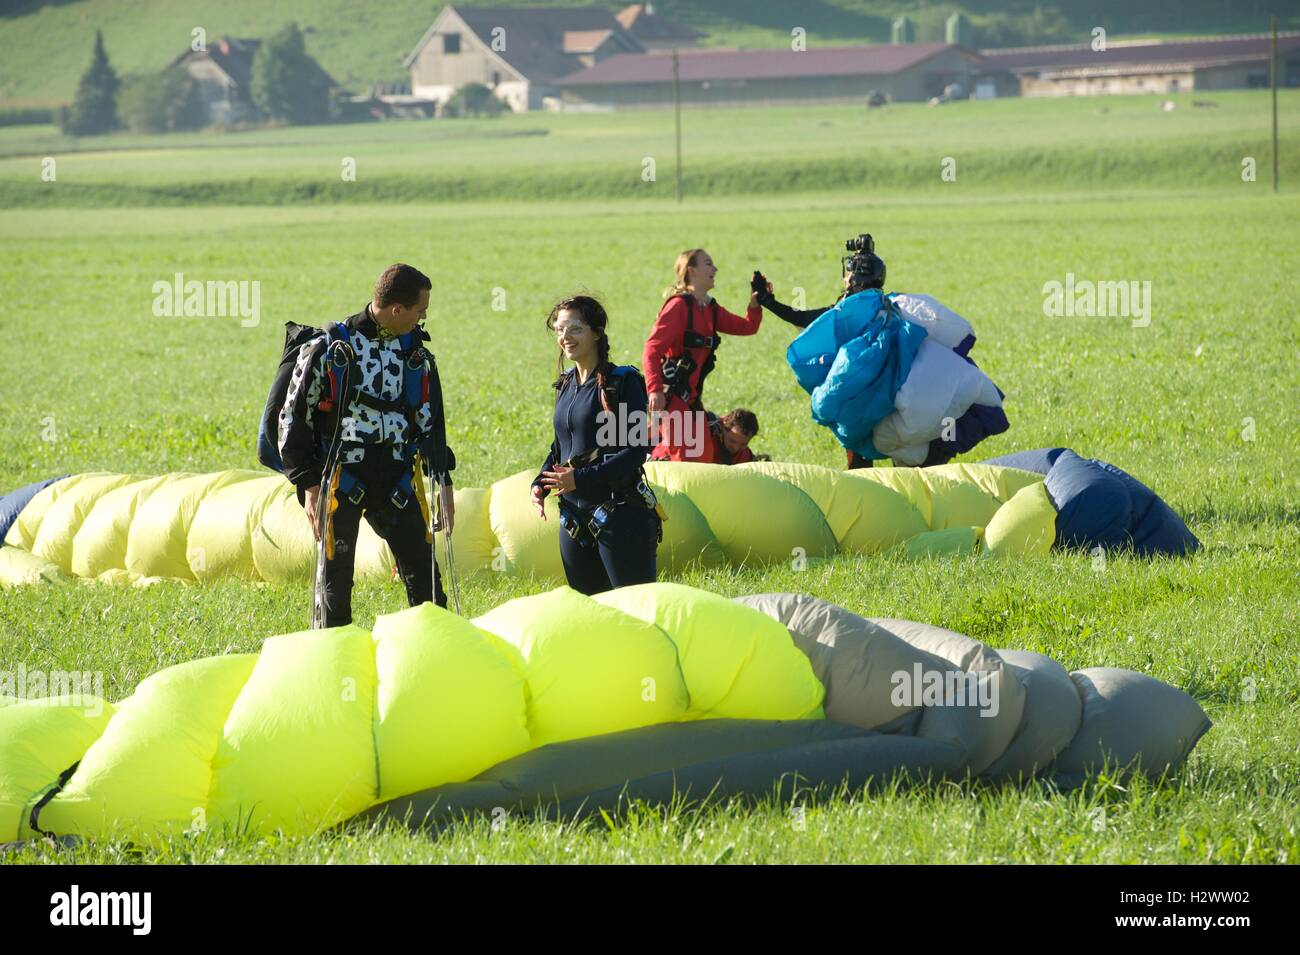 Happy poeple after happy landings - Stock Image